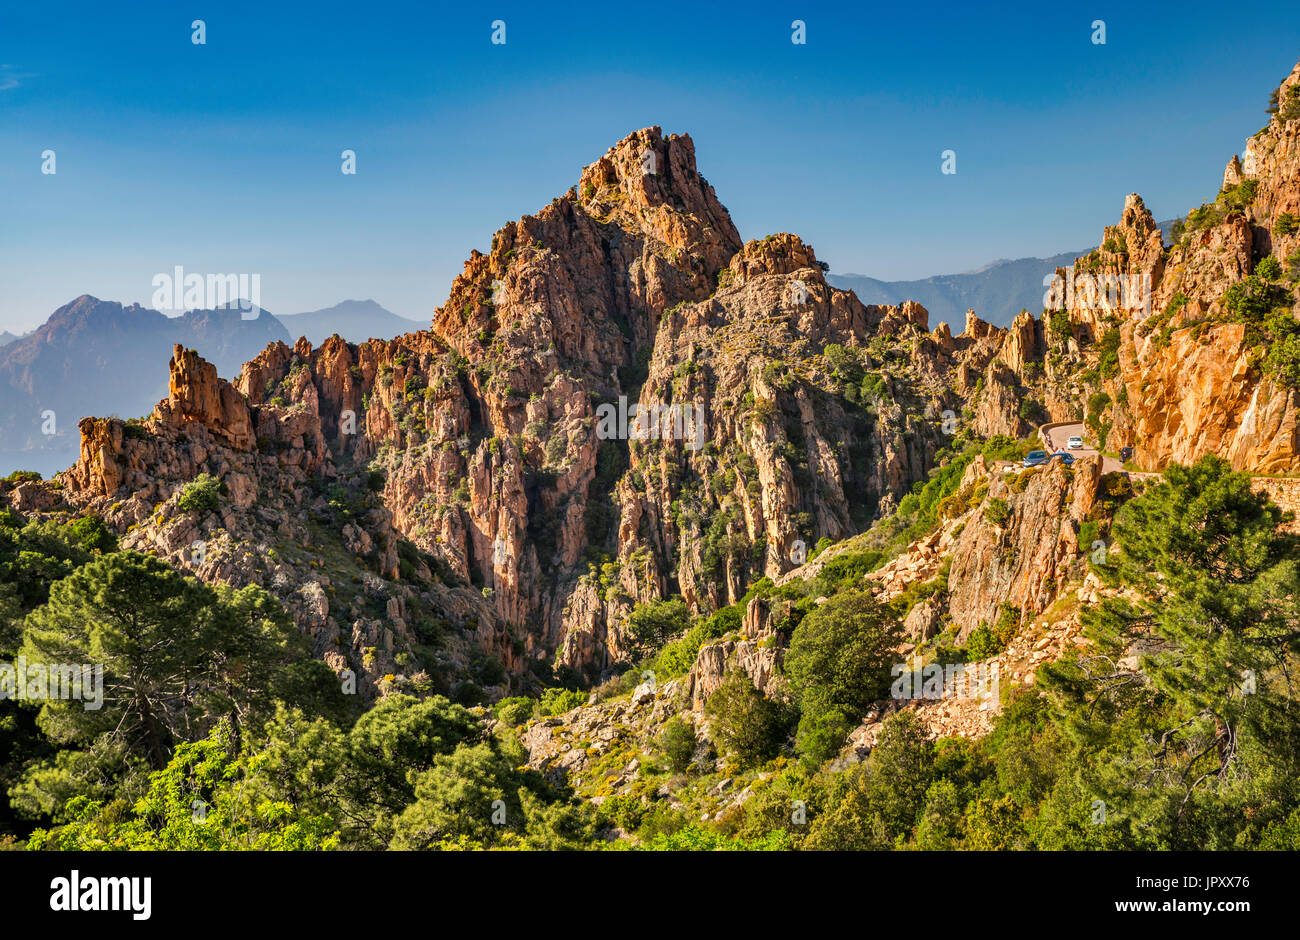 Orange porphyritic granite rocks, at Les Calanche de Piana, UNESCO World Heritage Site, Corse-du-Sud, Corsica, France Stock Photo